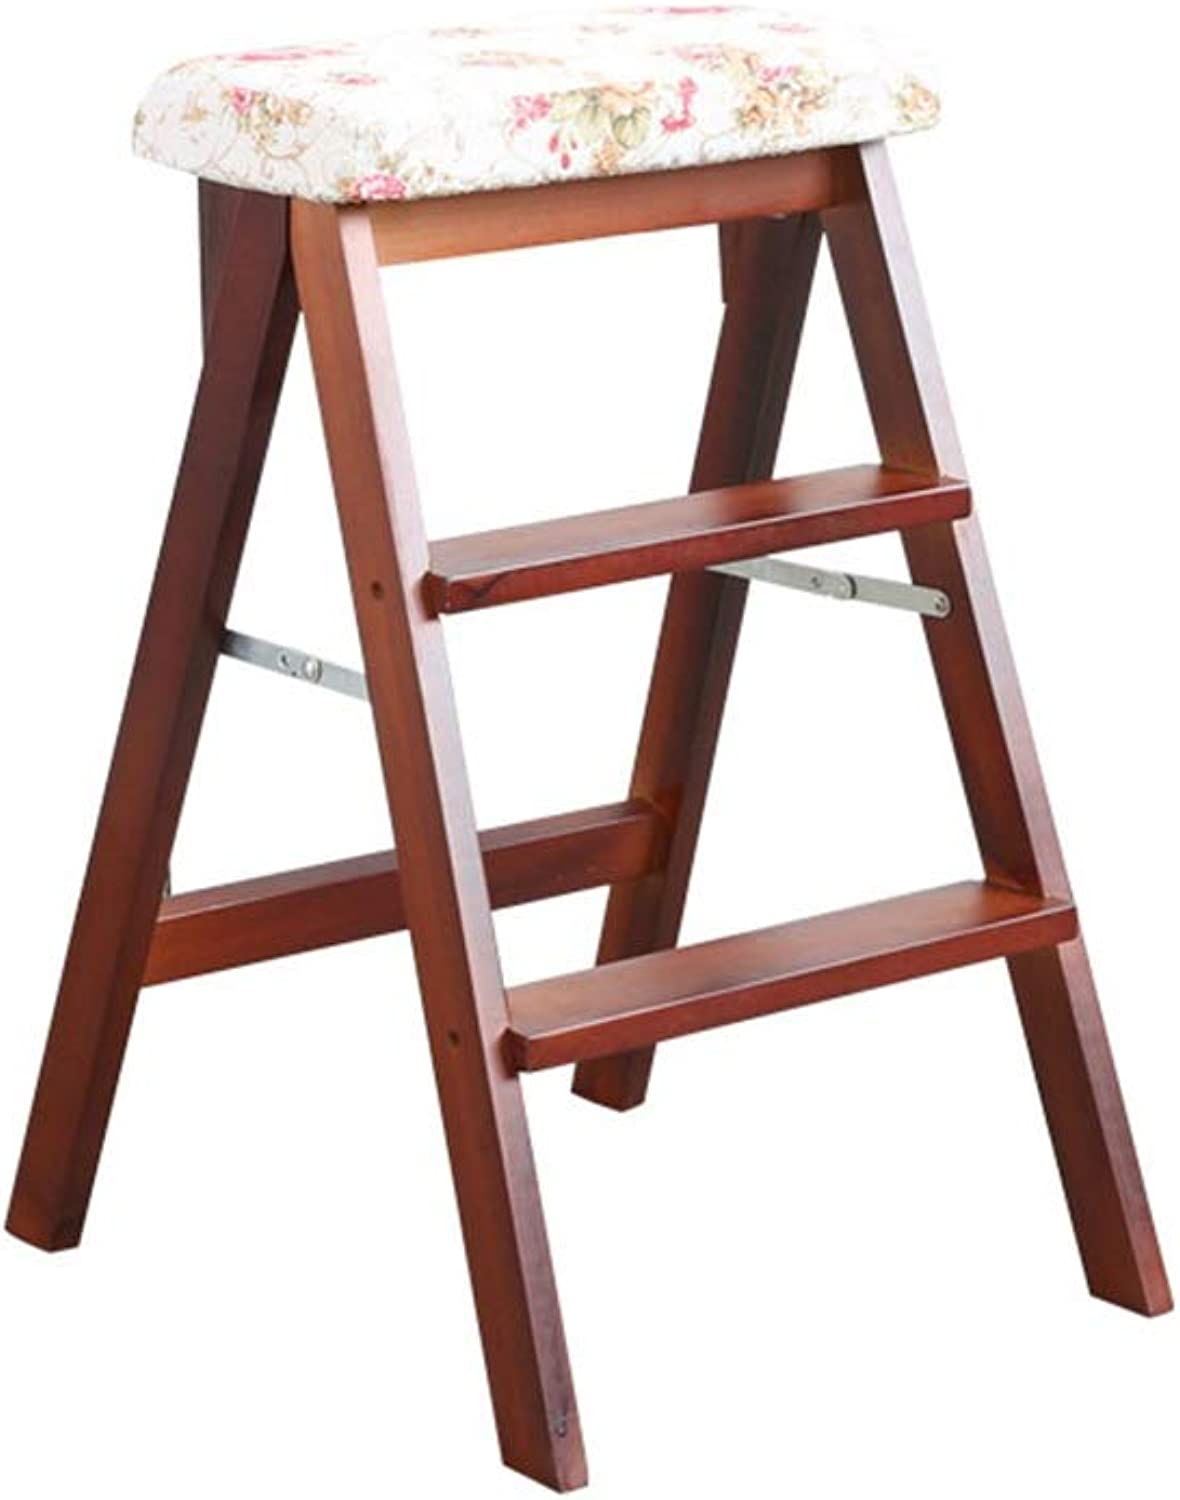 Kitchen Wooden Step Stool Ladder for Adults Solid Wood Folding Stepladder Portable Fold Up Footstool Multifunction Small Stool Bench (color   D)